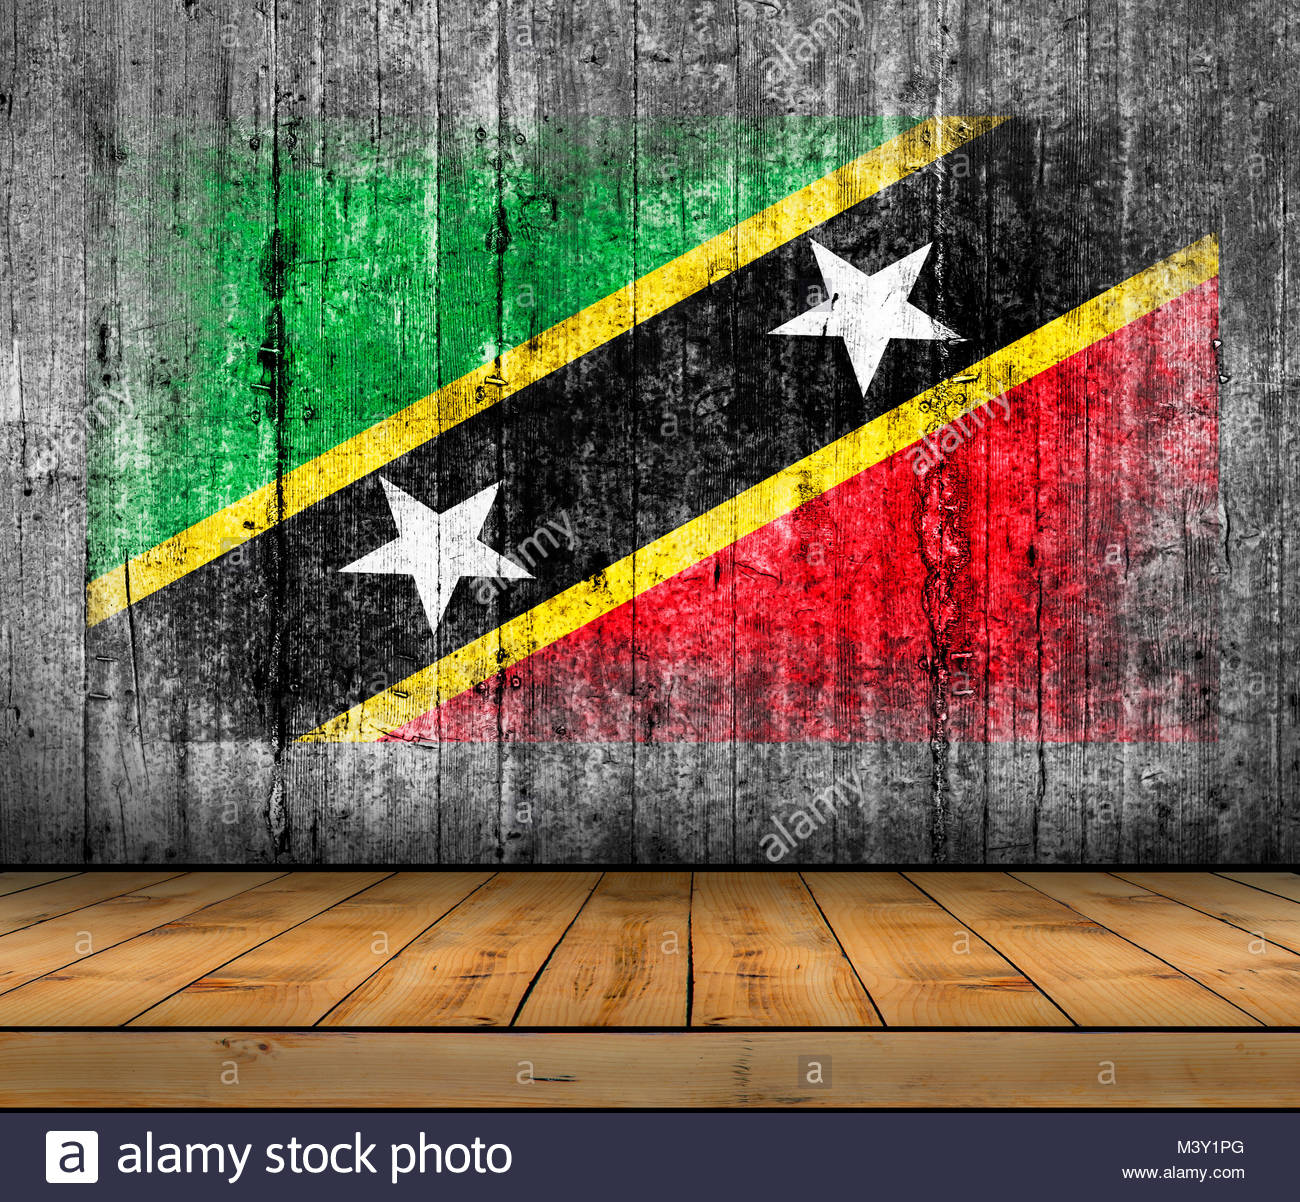 Saint Kitts and Nevis flag painted on concrete with wooden floor 1300x1202